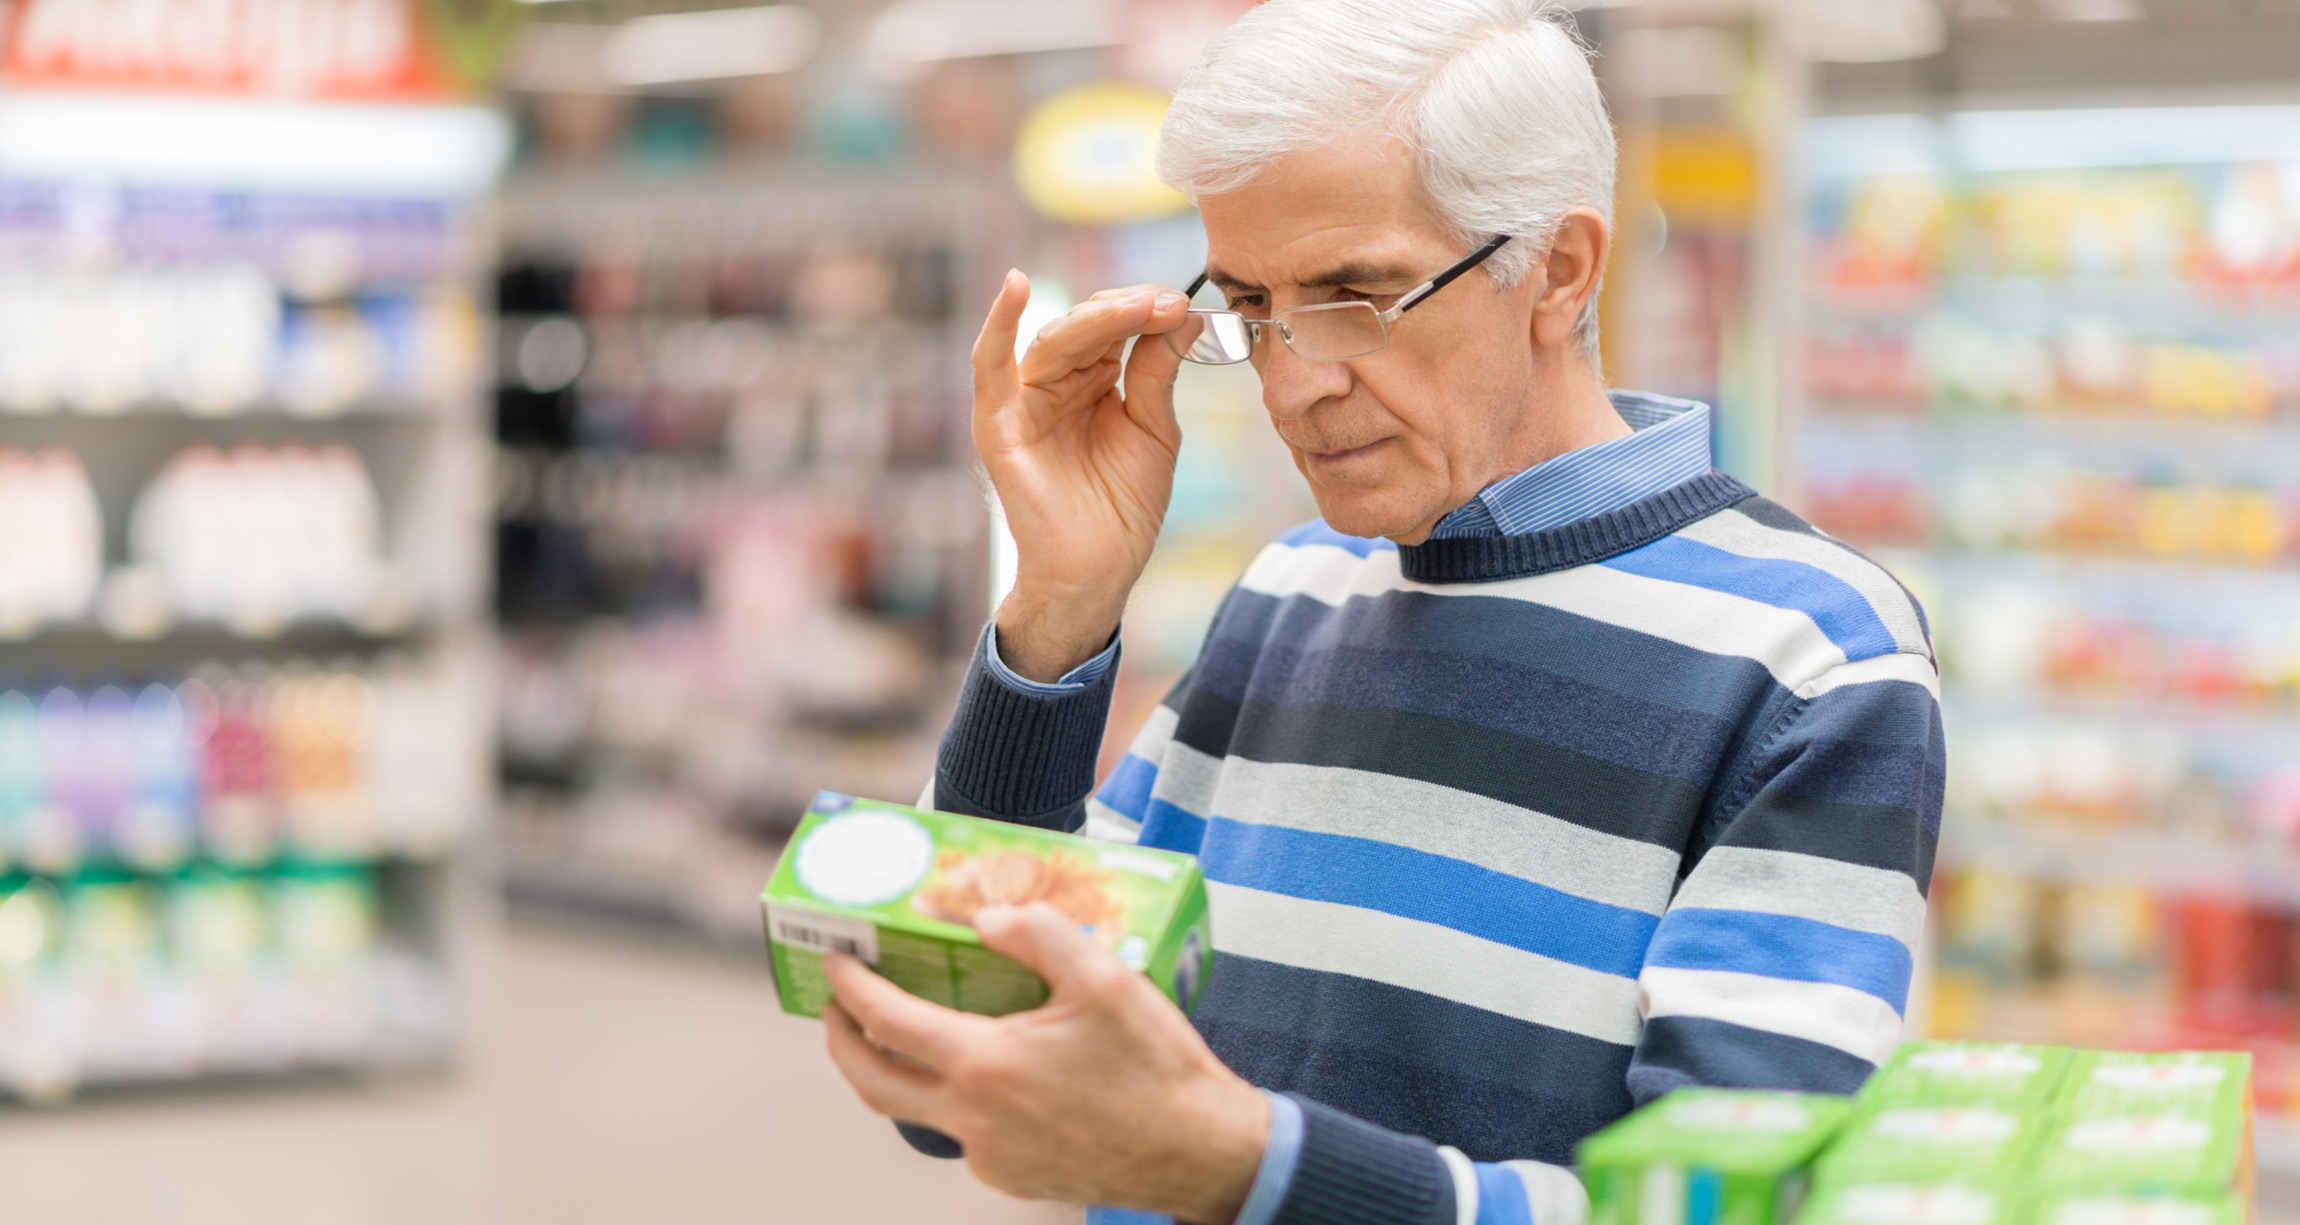 A man in a grocery store reading a food item's label